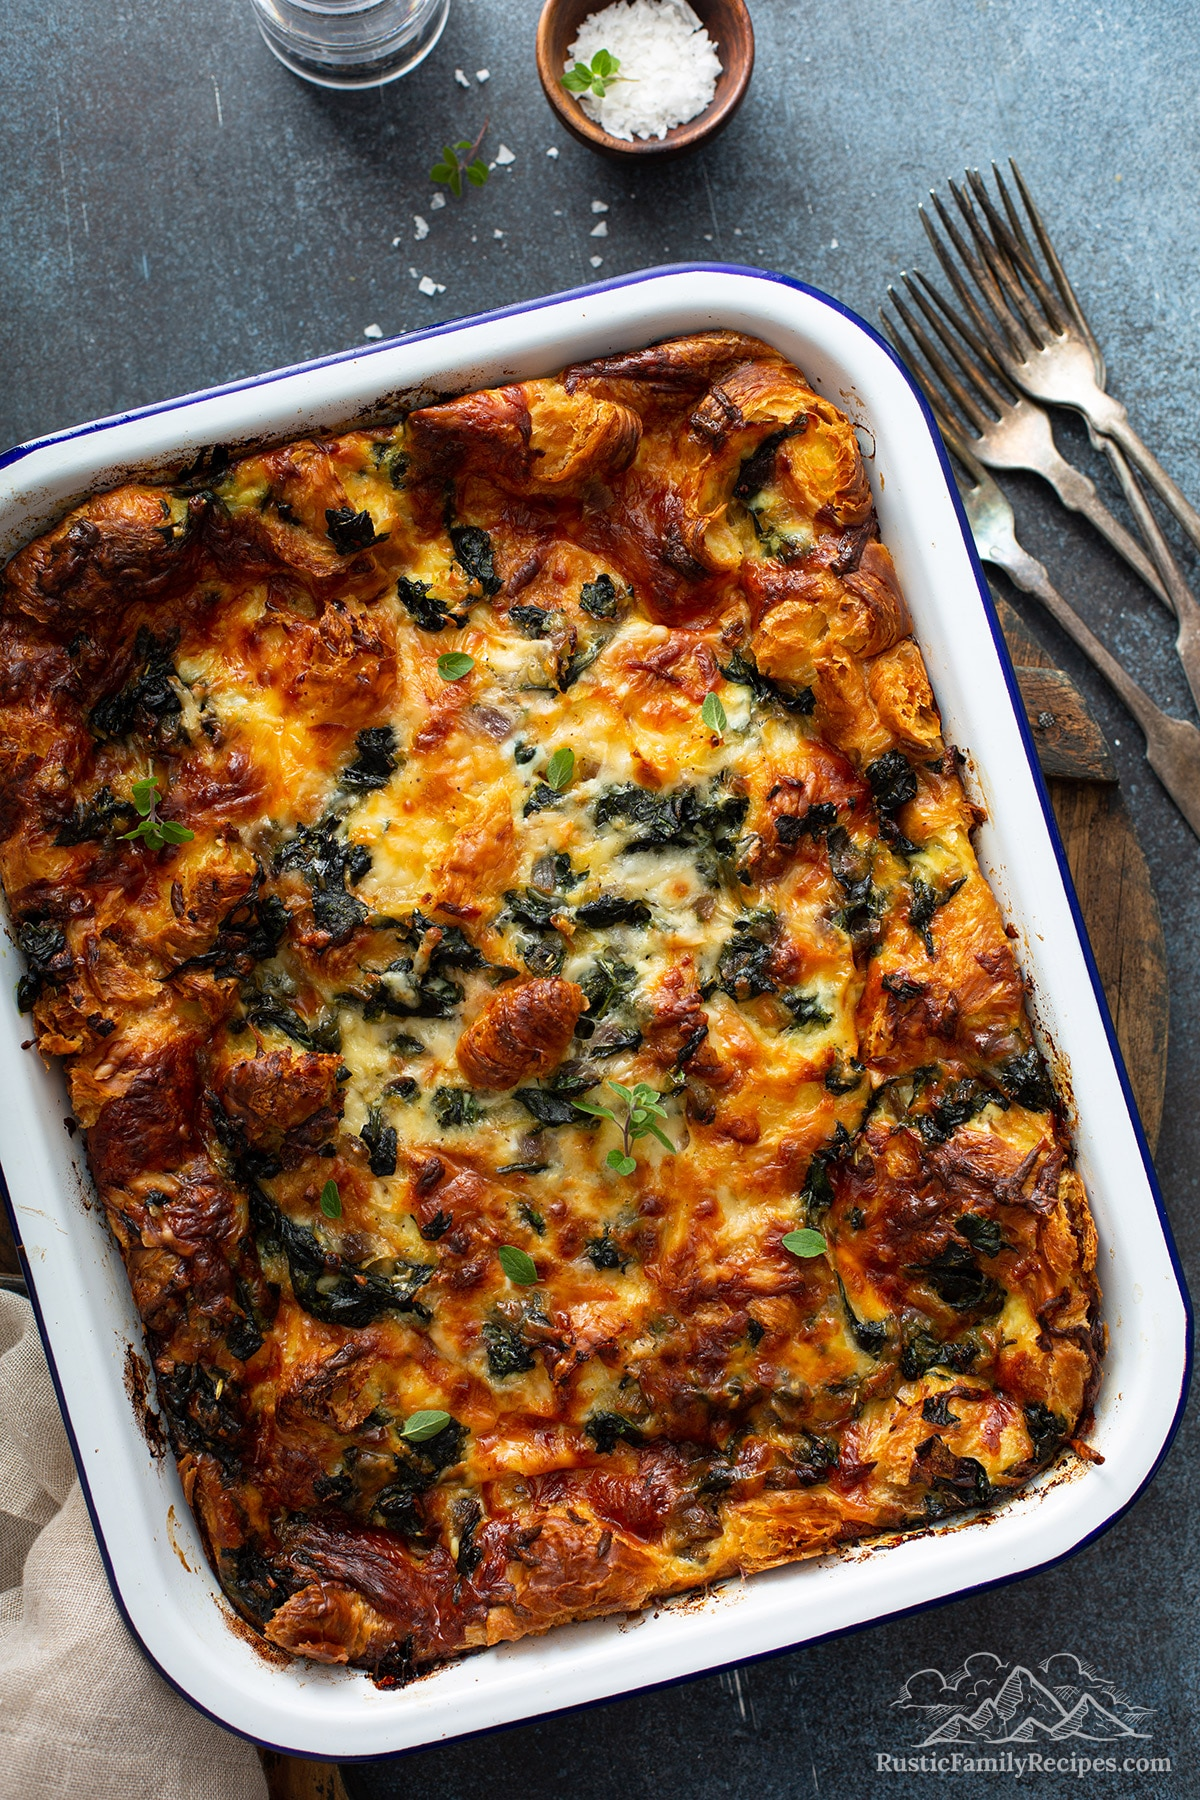 A cooked croissant strata in a white baking dish.